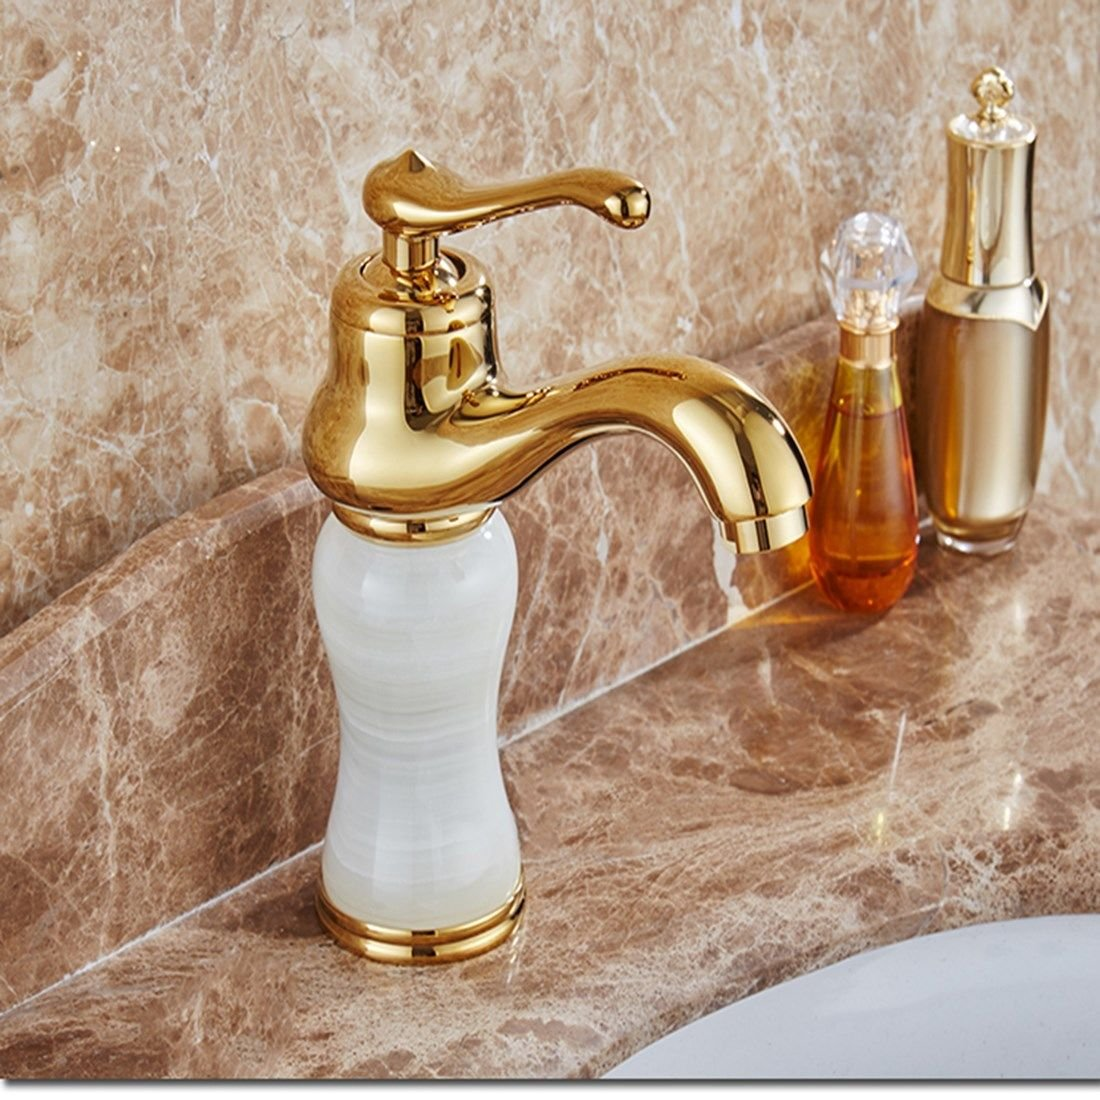 Kokeruup European-Style redating Copper Retro American Antique Faucet Bathroom gold-Plated hot and Cold redating Faucet